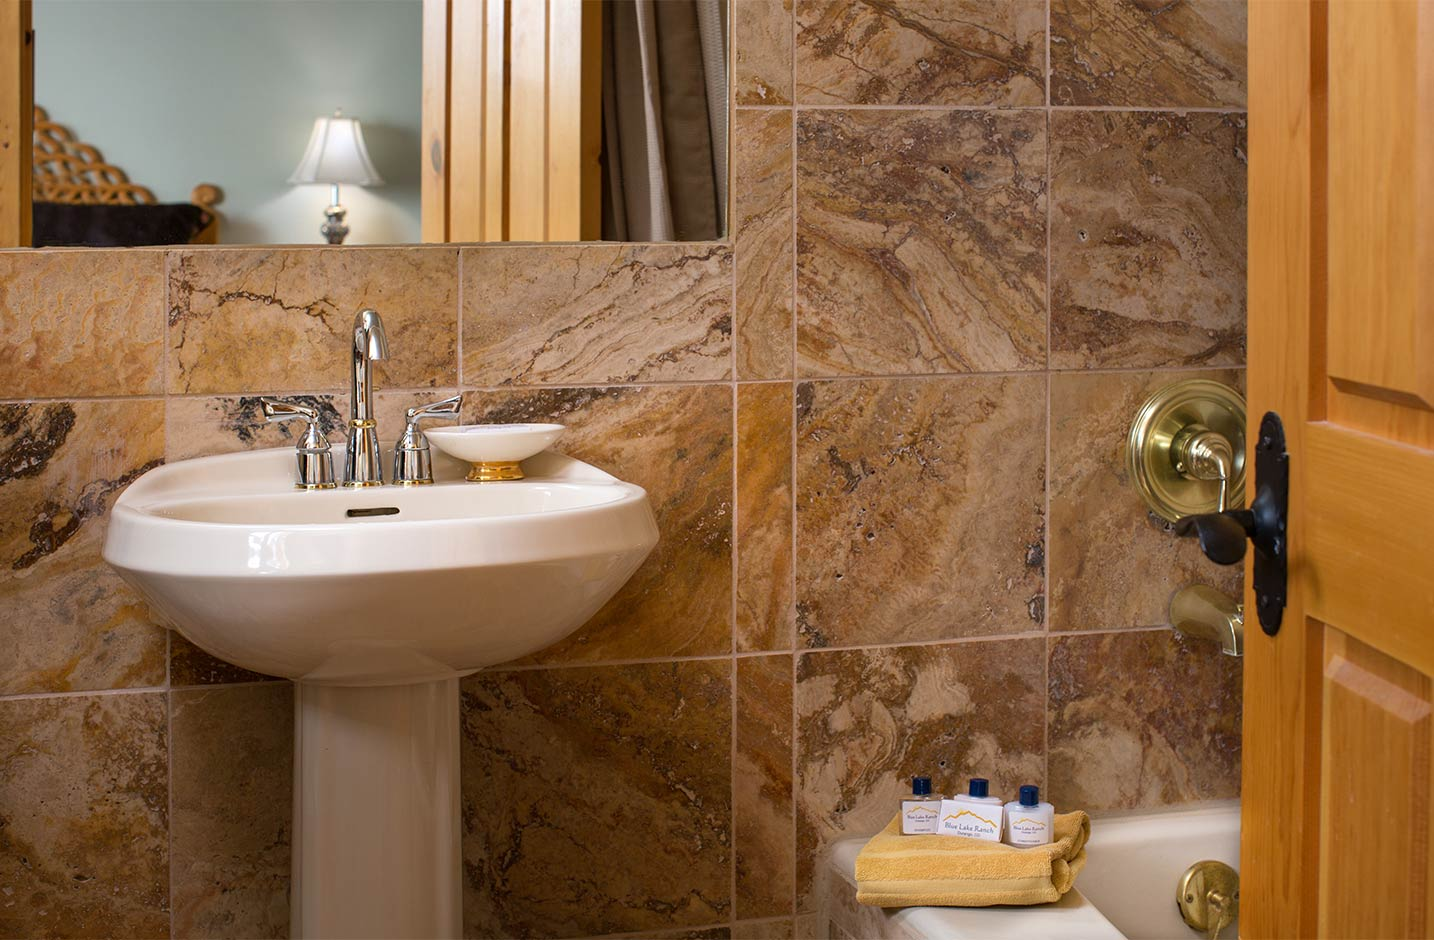 Bathroom with a tub, sink, and miror